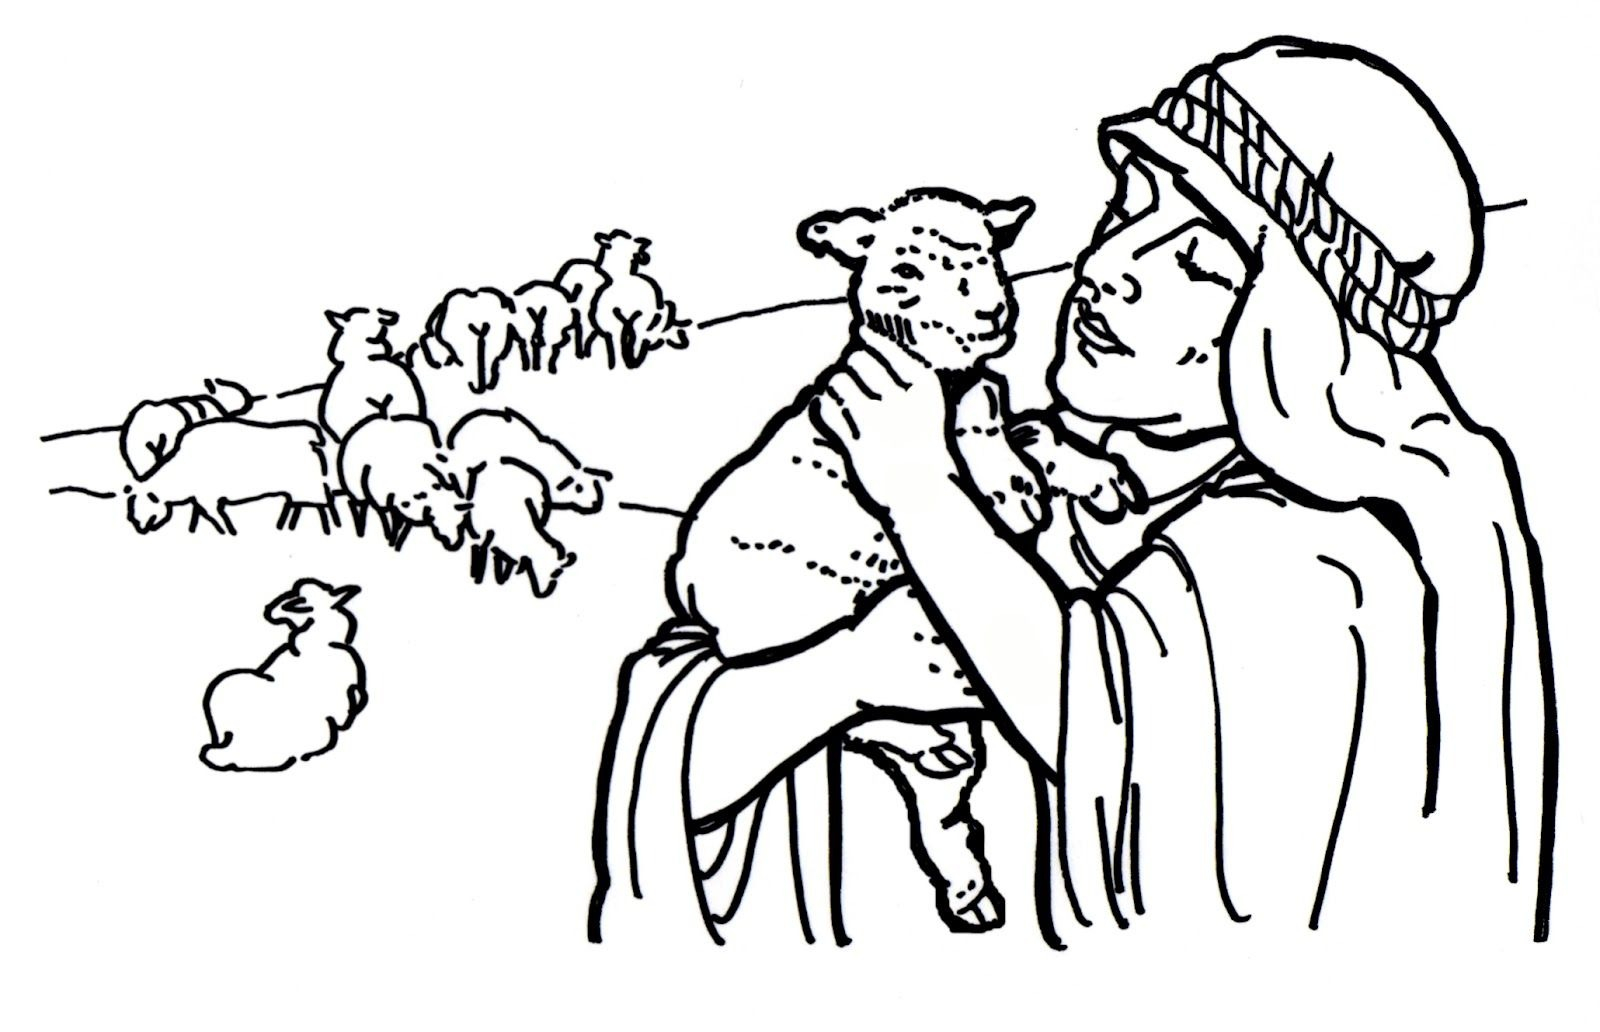 The Good Shepherd Coloring Page Good Shepherd Drawing Free Download Best Good Shepherd Drawing On